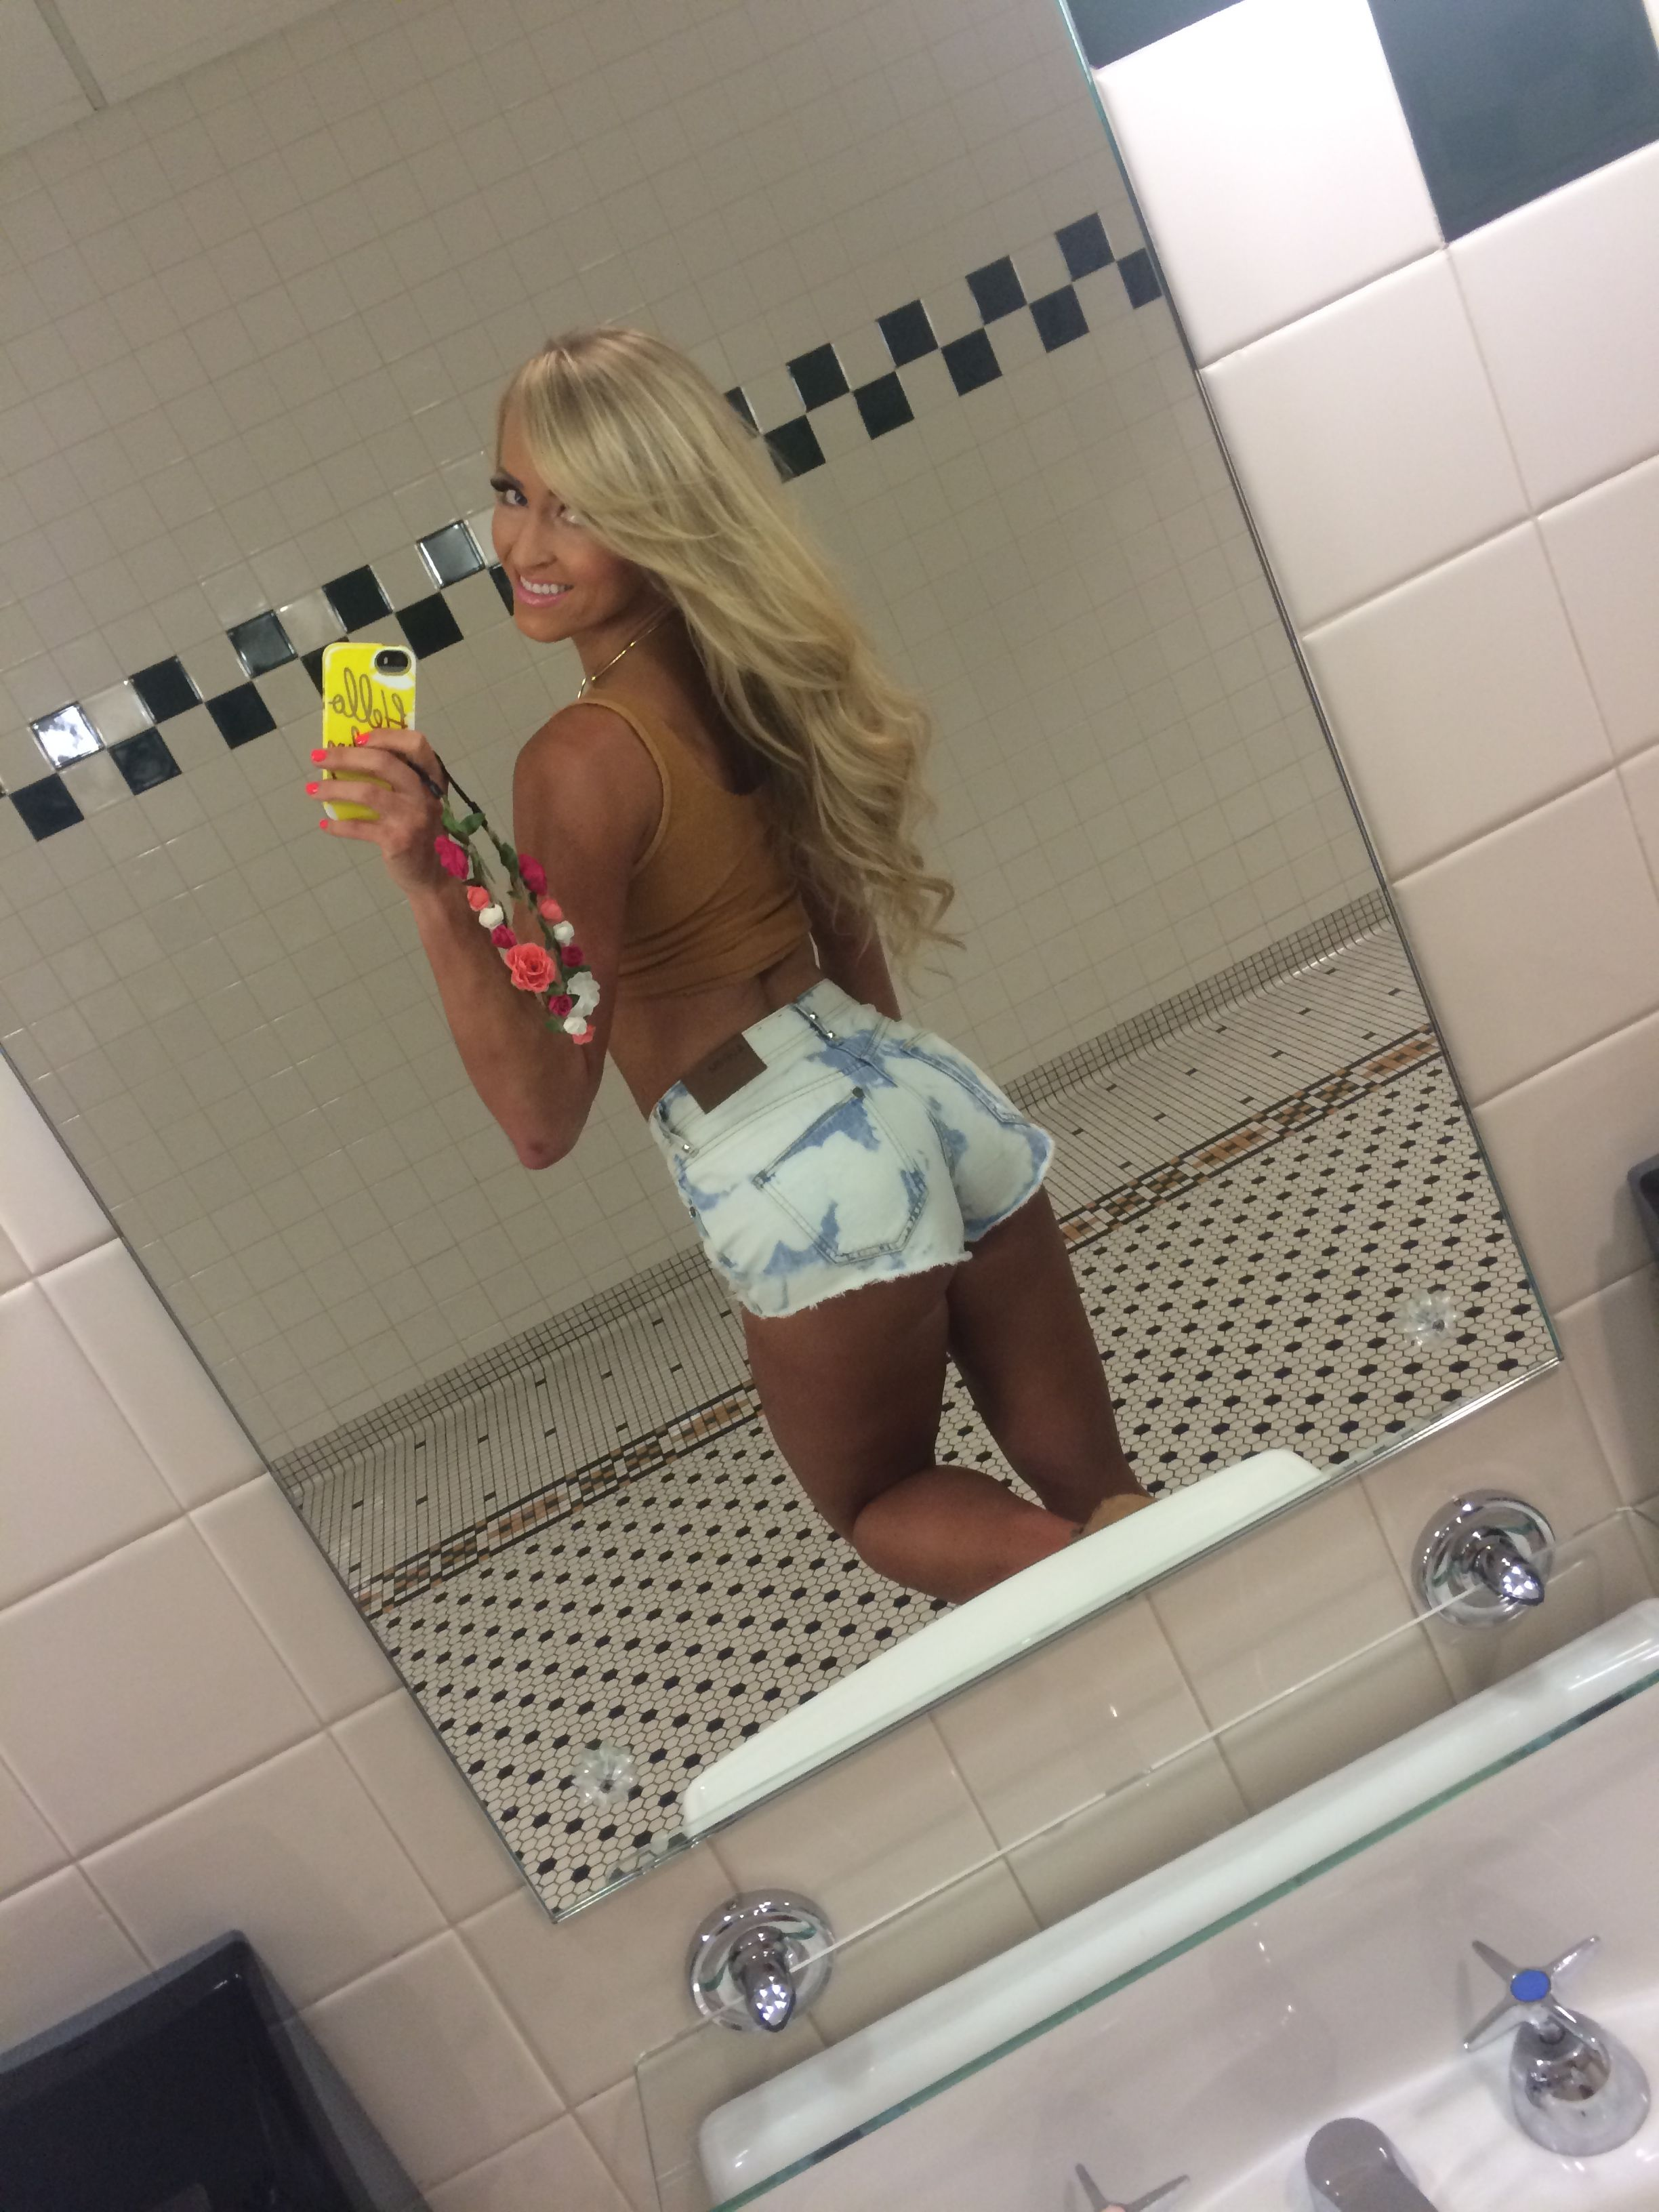 summer rae leaked photos thefappening